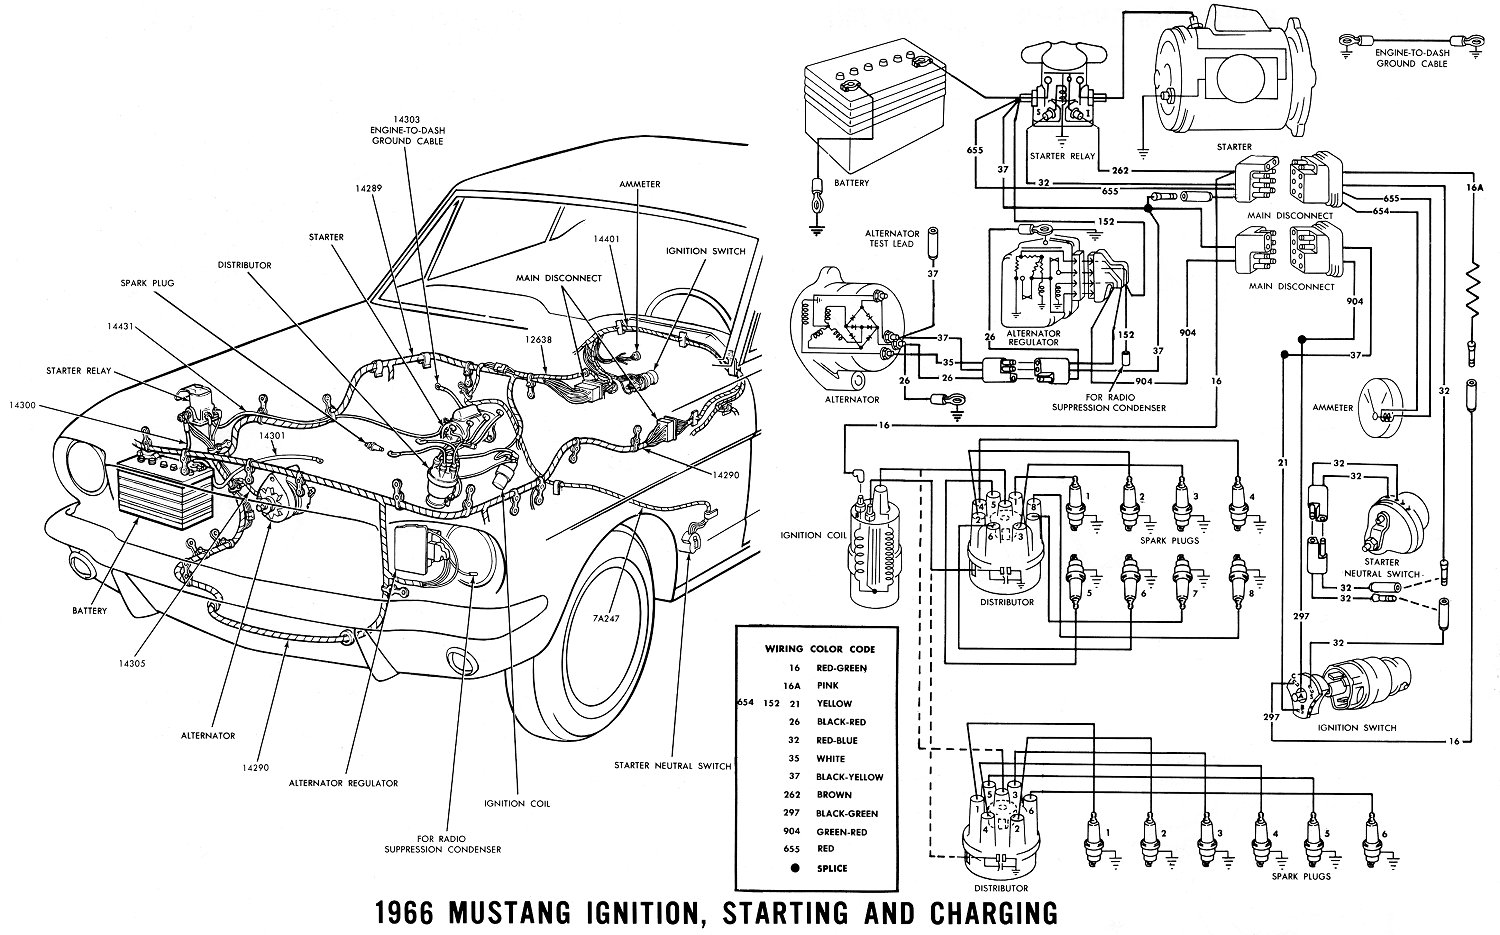 Wrg Ford Mustang Gt Fuse Box Diagram